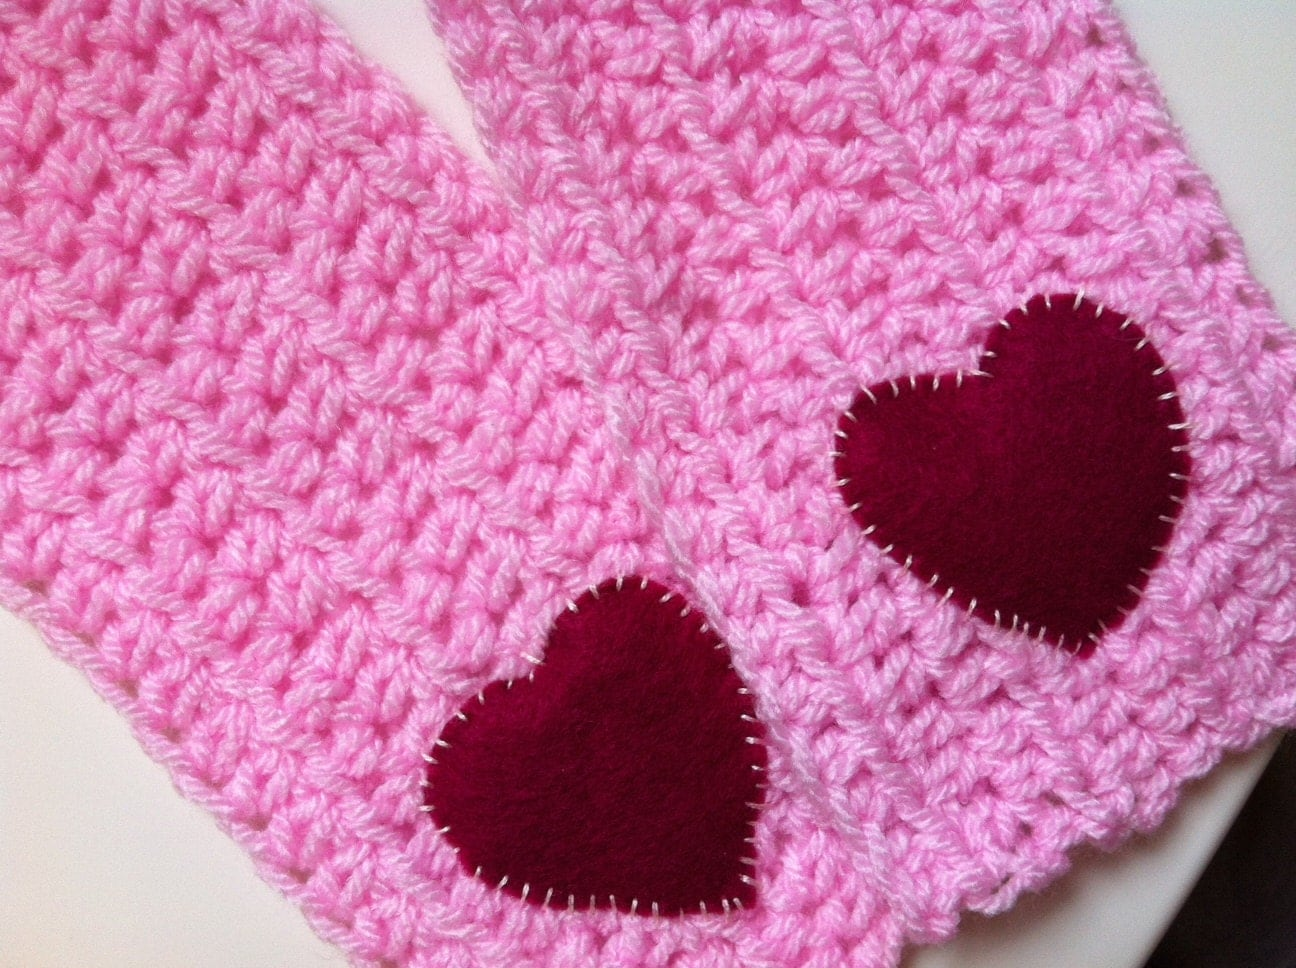 crochet scarf pink girls heart scarf from kookooed Crochet Childrens Scarf